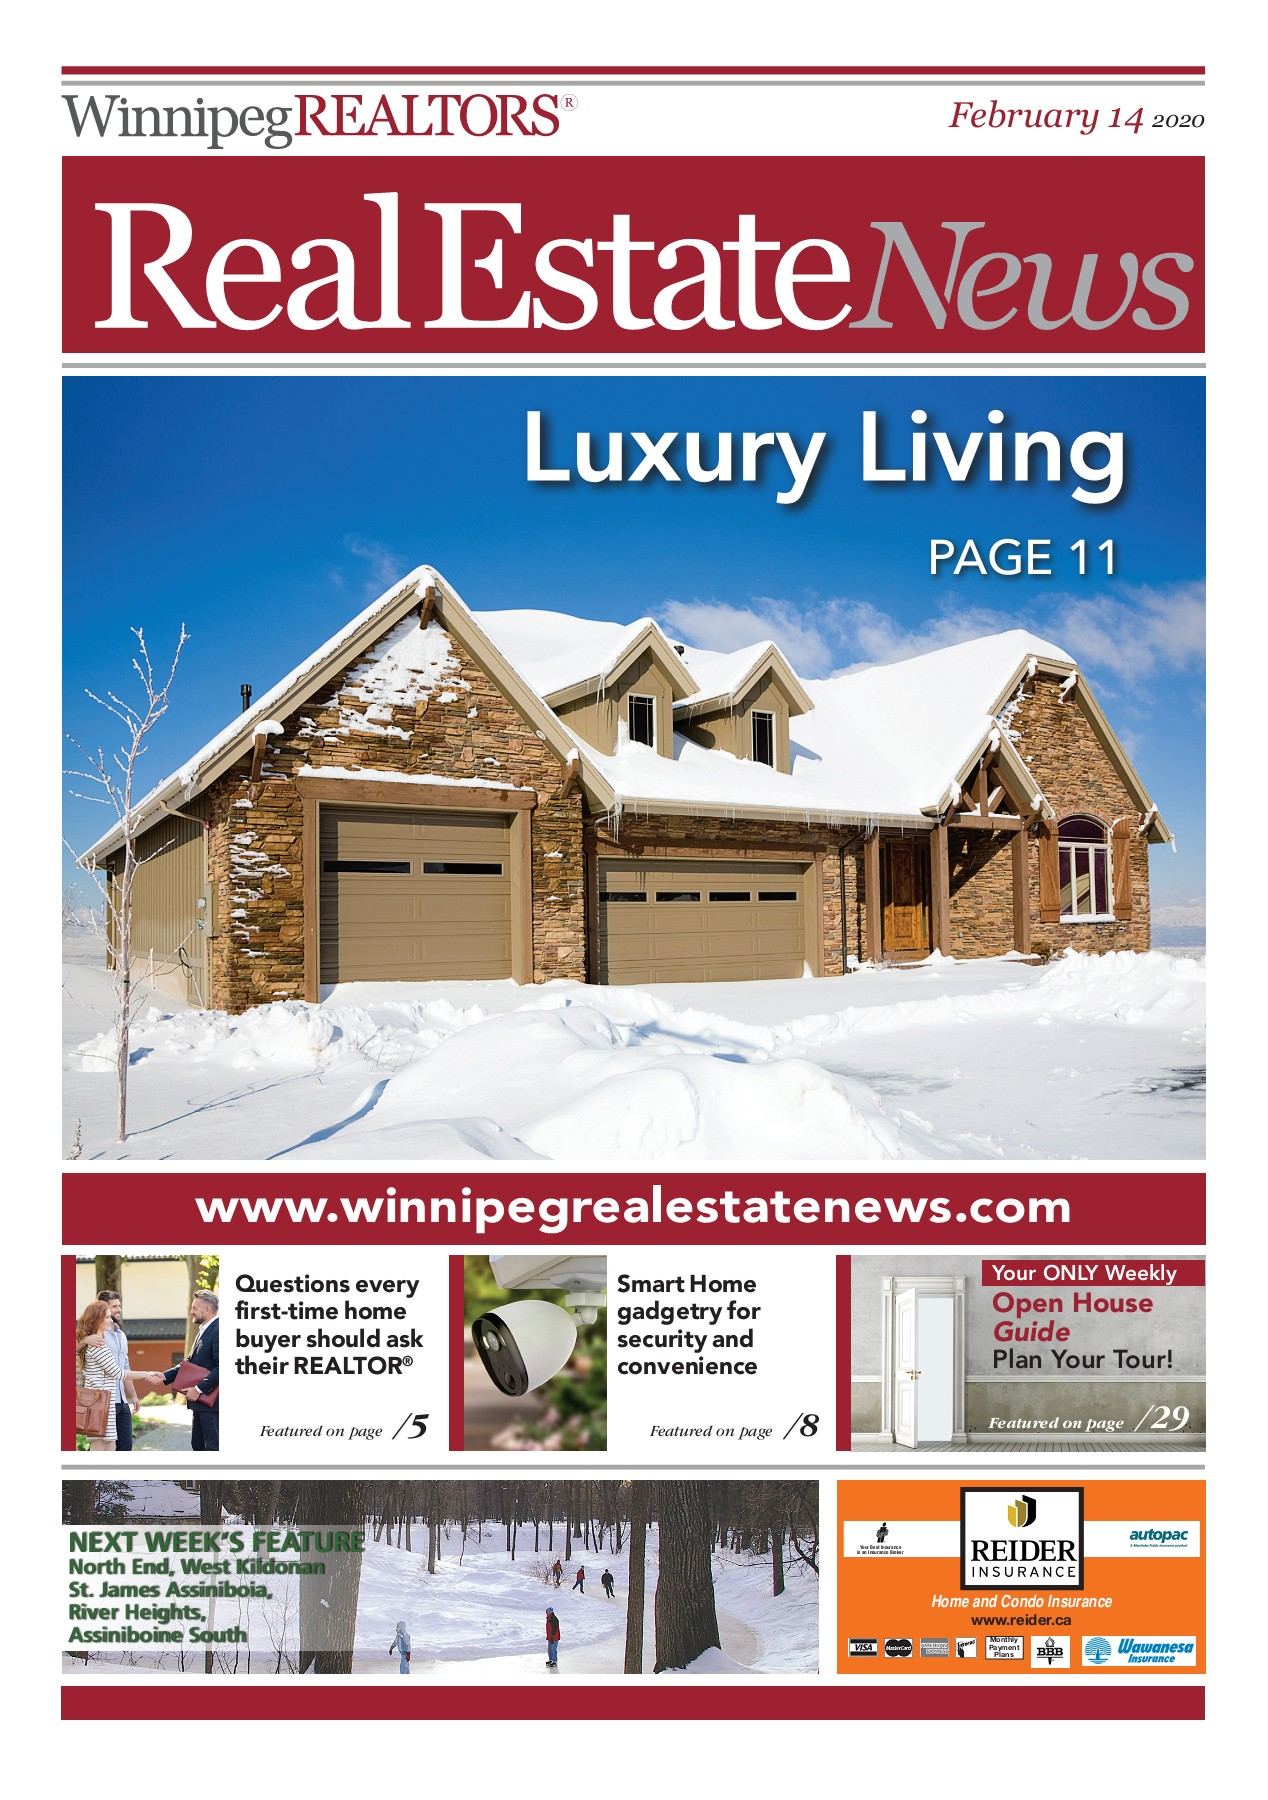 Bon Coin Jardinage 56 Frais Winnipeg Real Estate News February 14 2020 Pages 1 50 Of 63 Élégant Bon Coin Jardinage 56